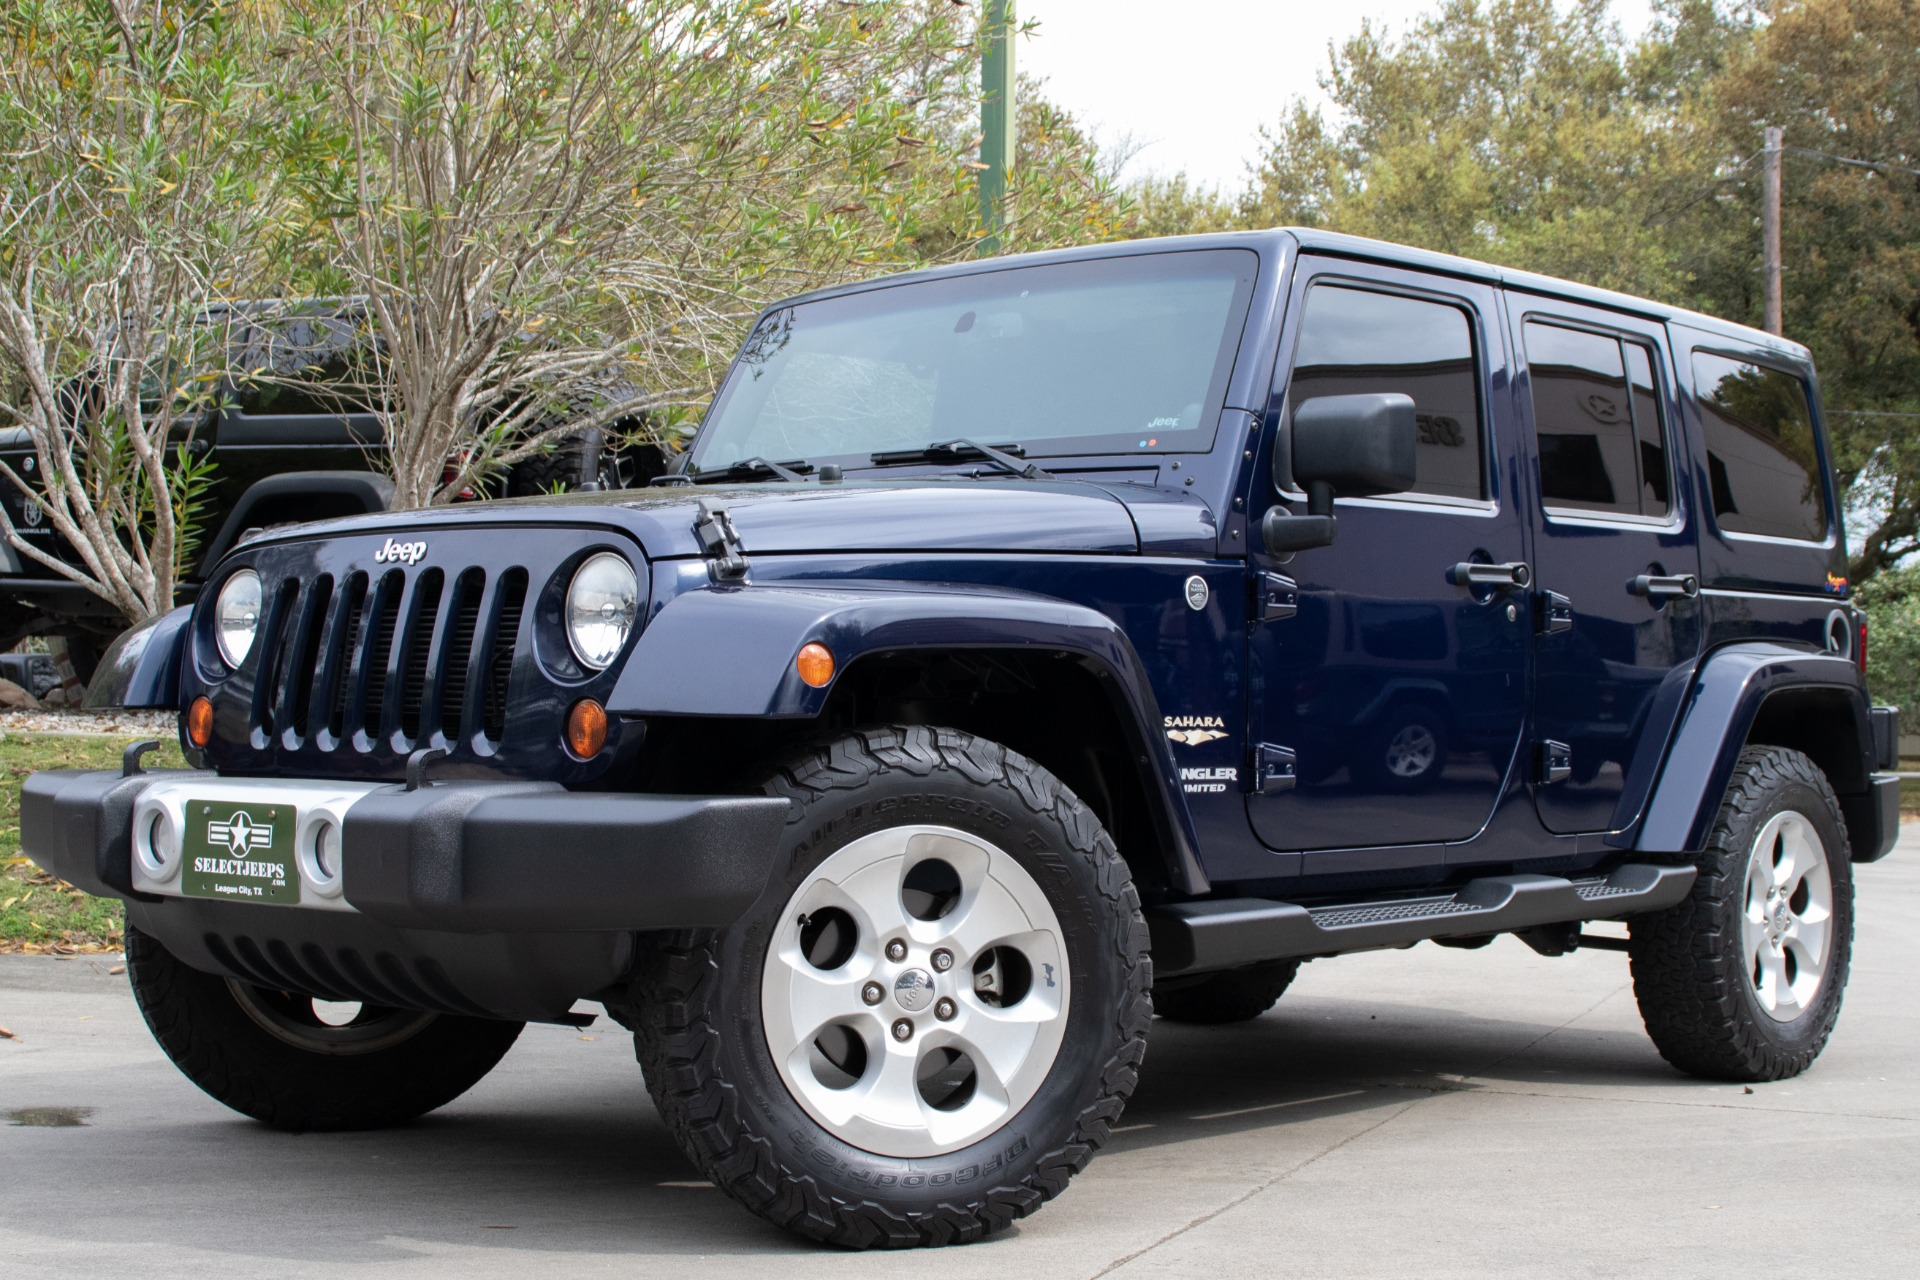 used 2013 jeep wrangler unlimited sahara 4wd 4dr sahara for sale 29 995 select jeeps inc. Black Bedroom Furniture Sets. Home Design Ideas